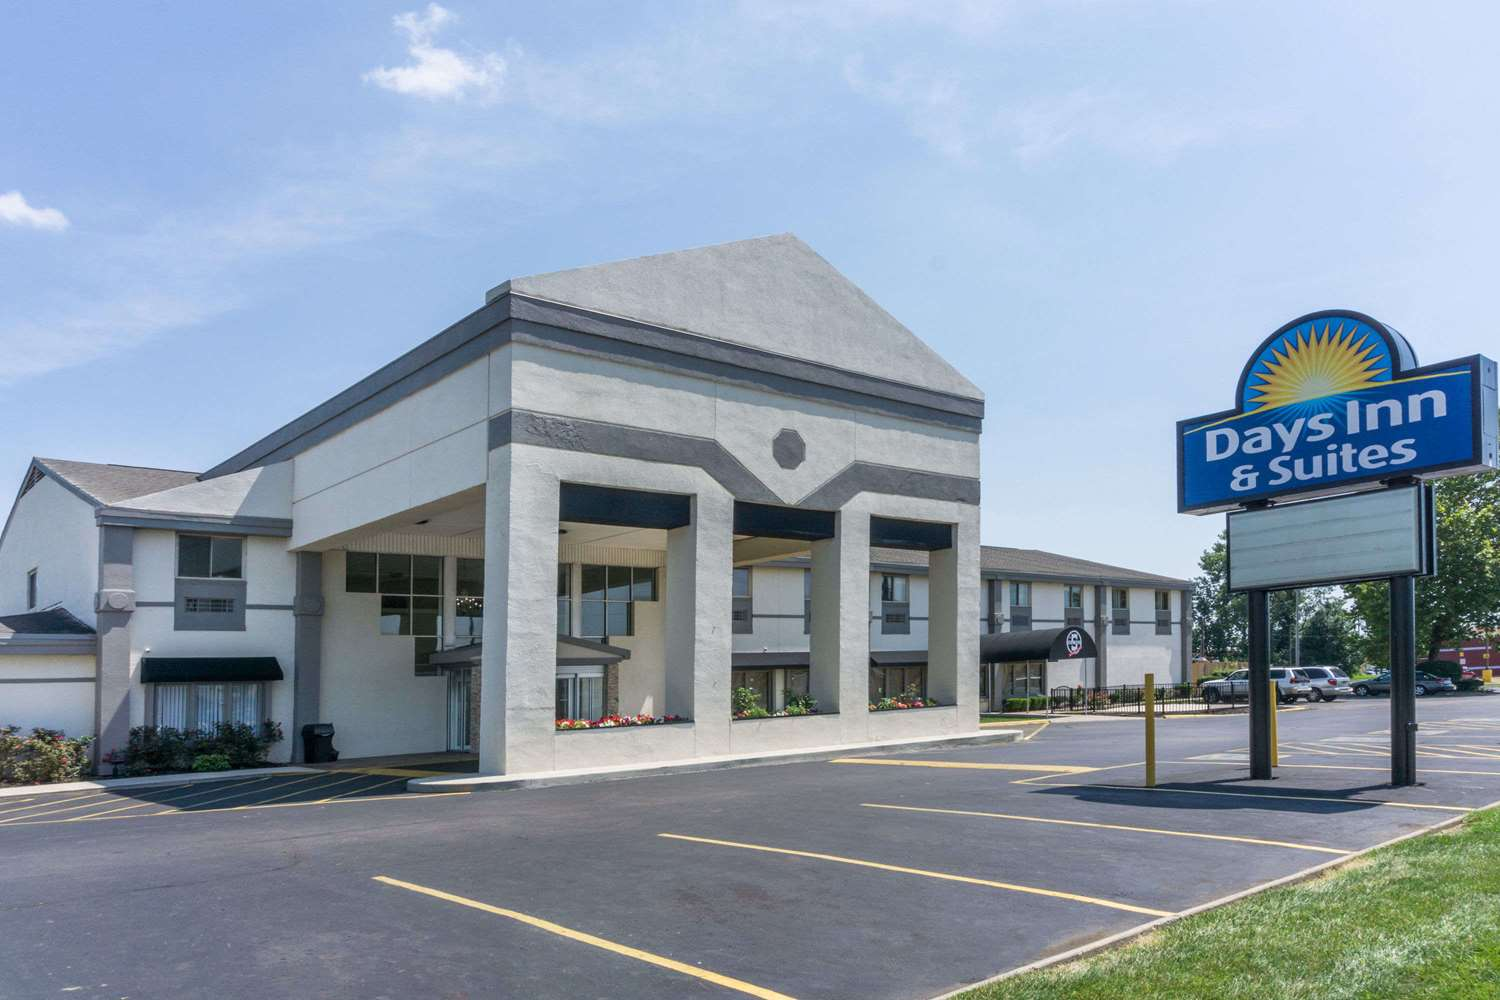 Days Inn Suites Reynoldsburg